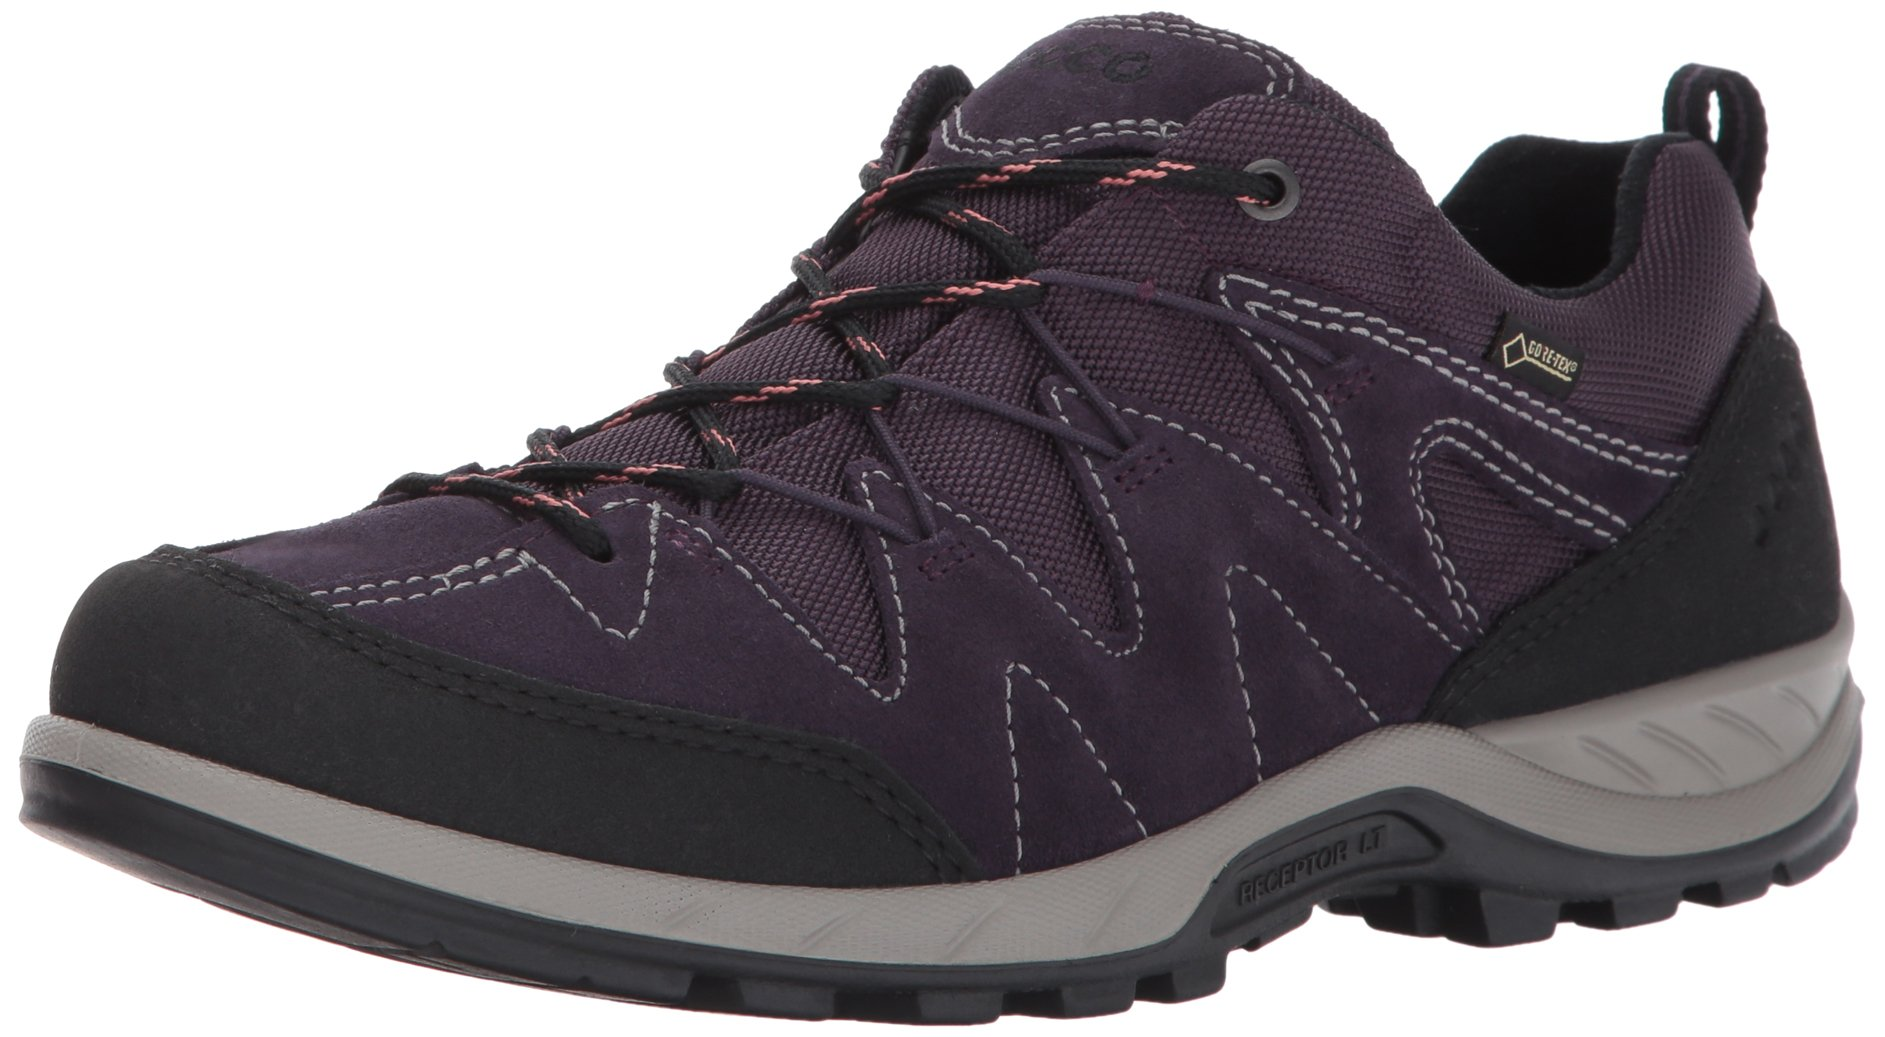 ECCO Women's Yura Low Gore-Tex Hiking Shoe, Black/Night Shade, 42 EU / 11-11.5 US